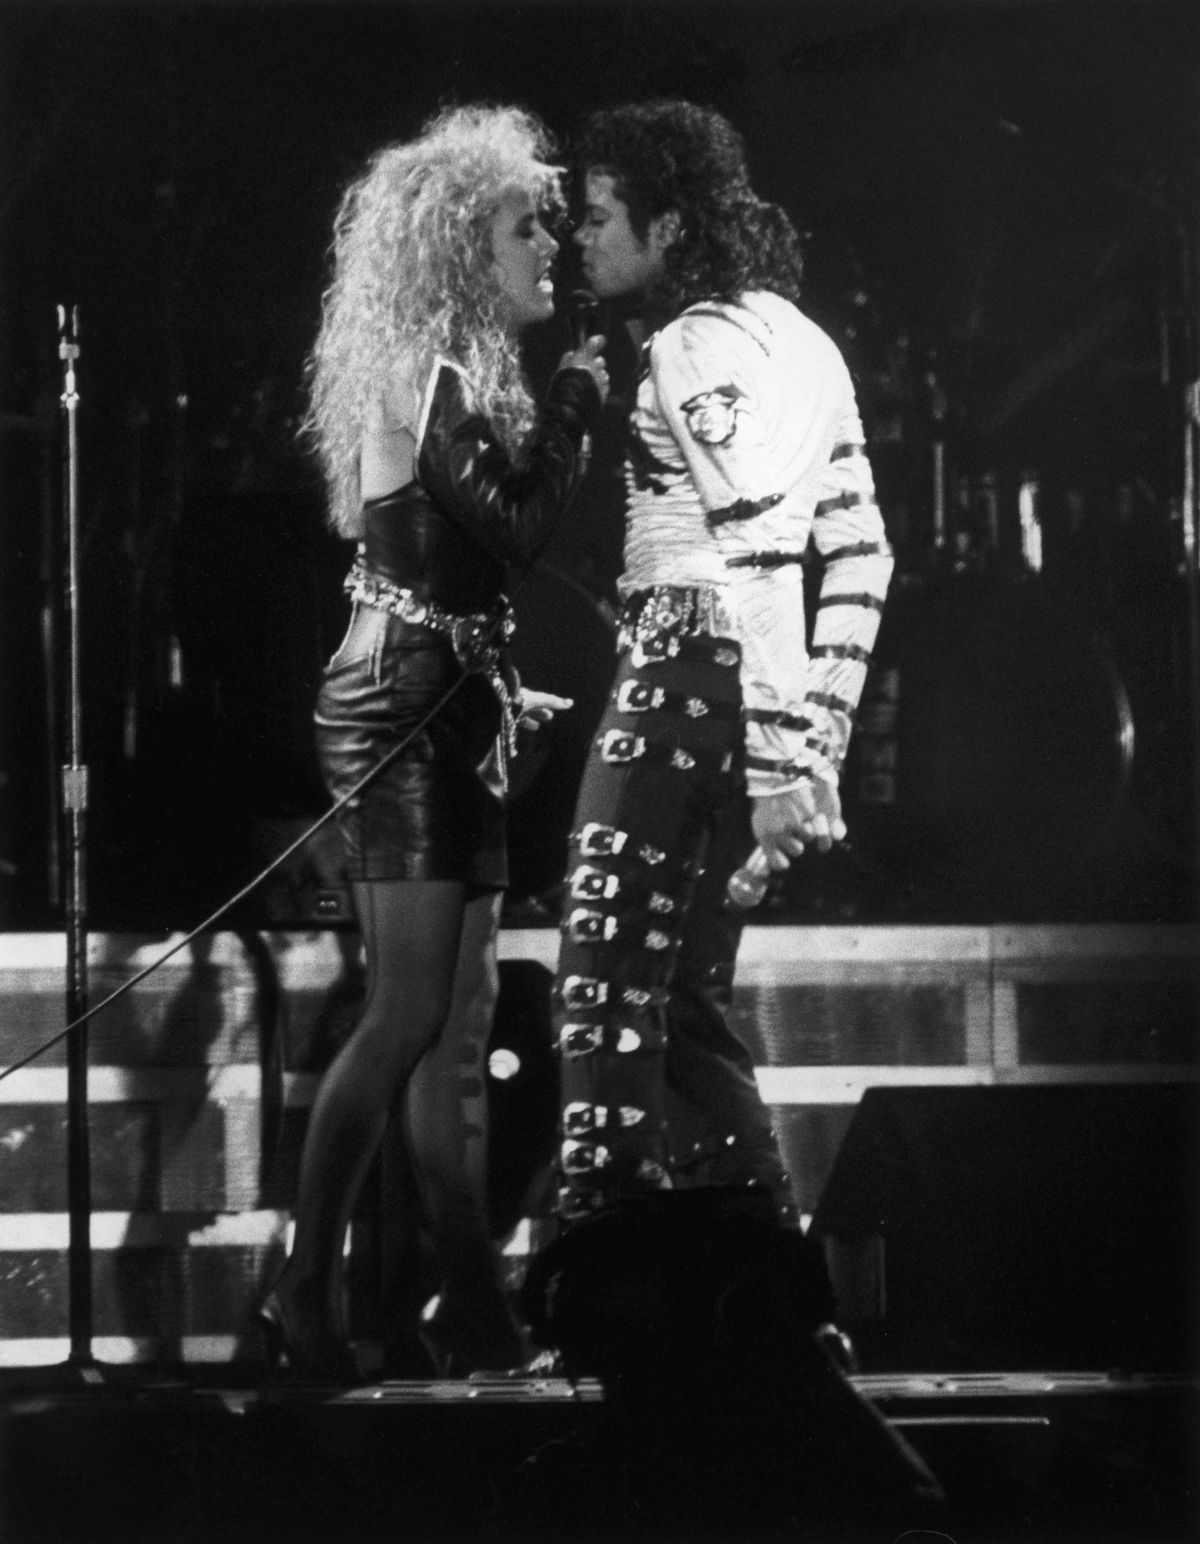 Pop star Michael Jackson performs a duet with backing singer Sheryl Crow during a concert in Rome, May 1988. | Getty Images